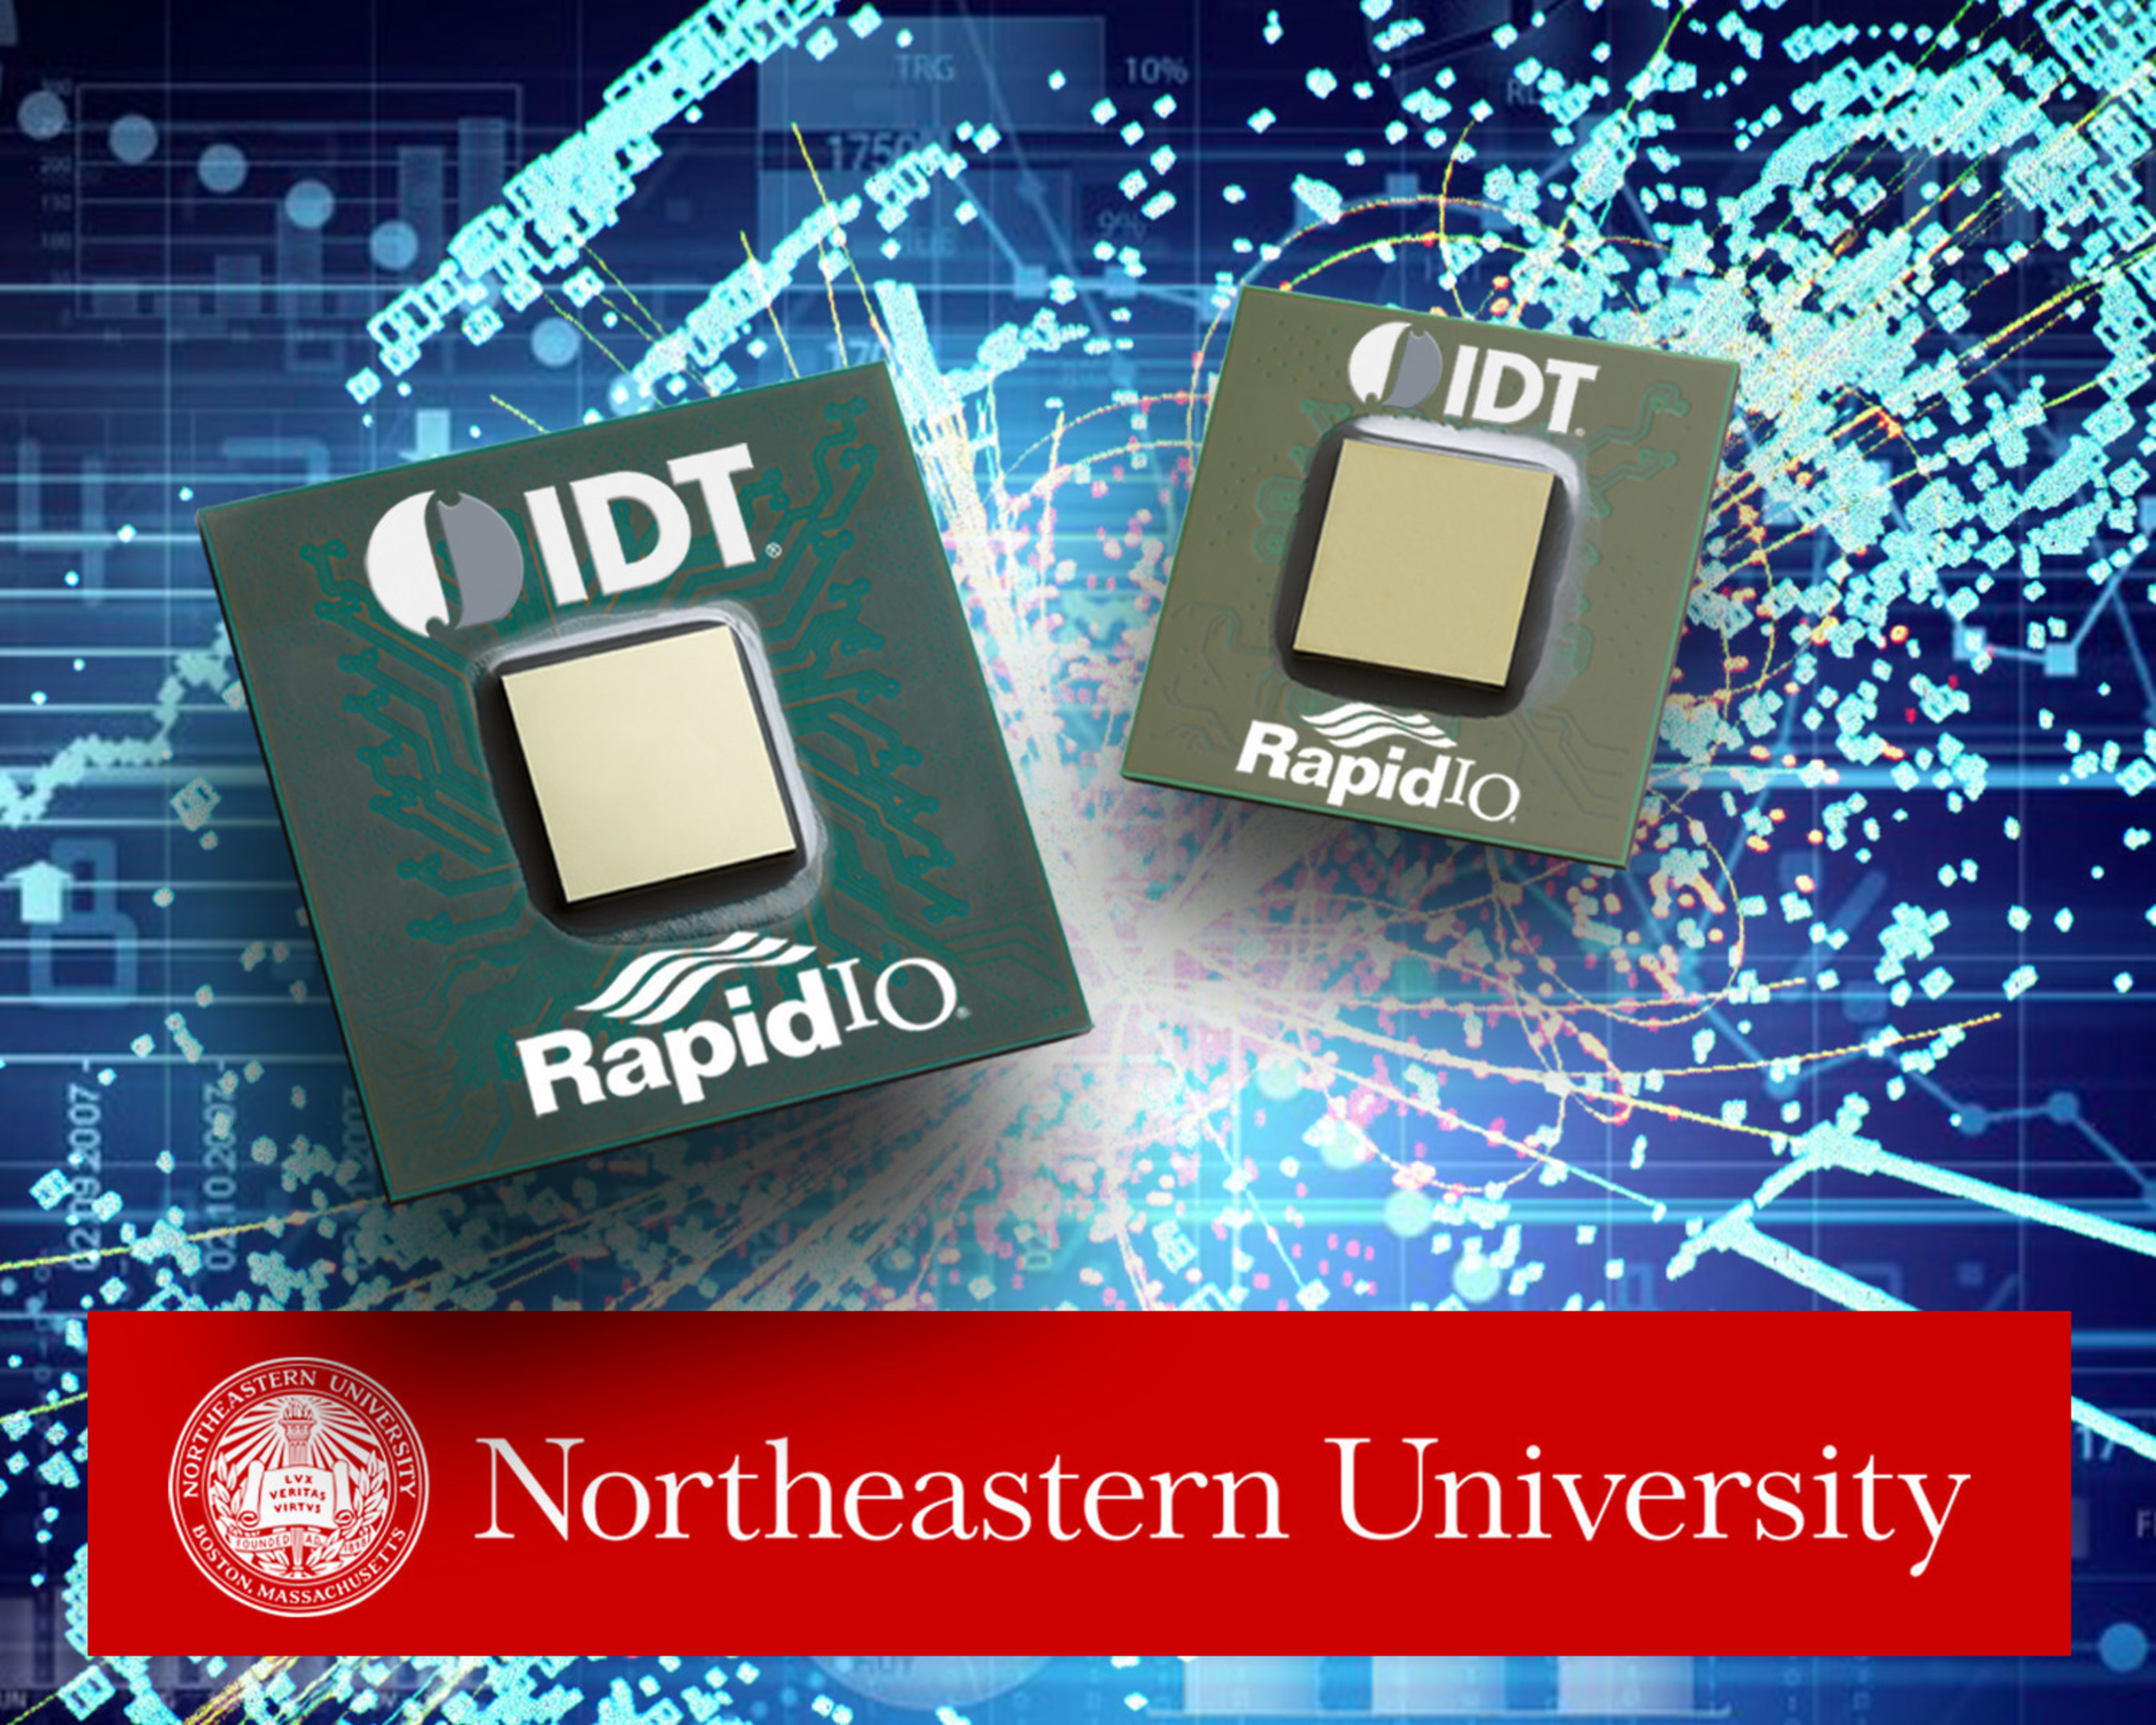 IDT and Northeastern University Collaborate on Research to Improve Data Analytics, Caching and Bandwidth in Access Networks